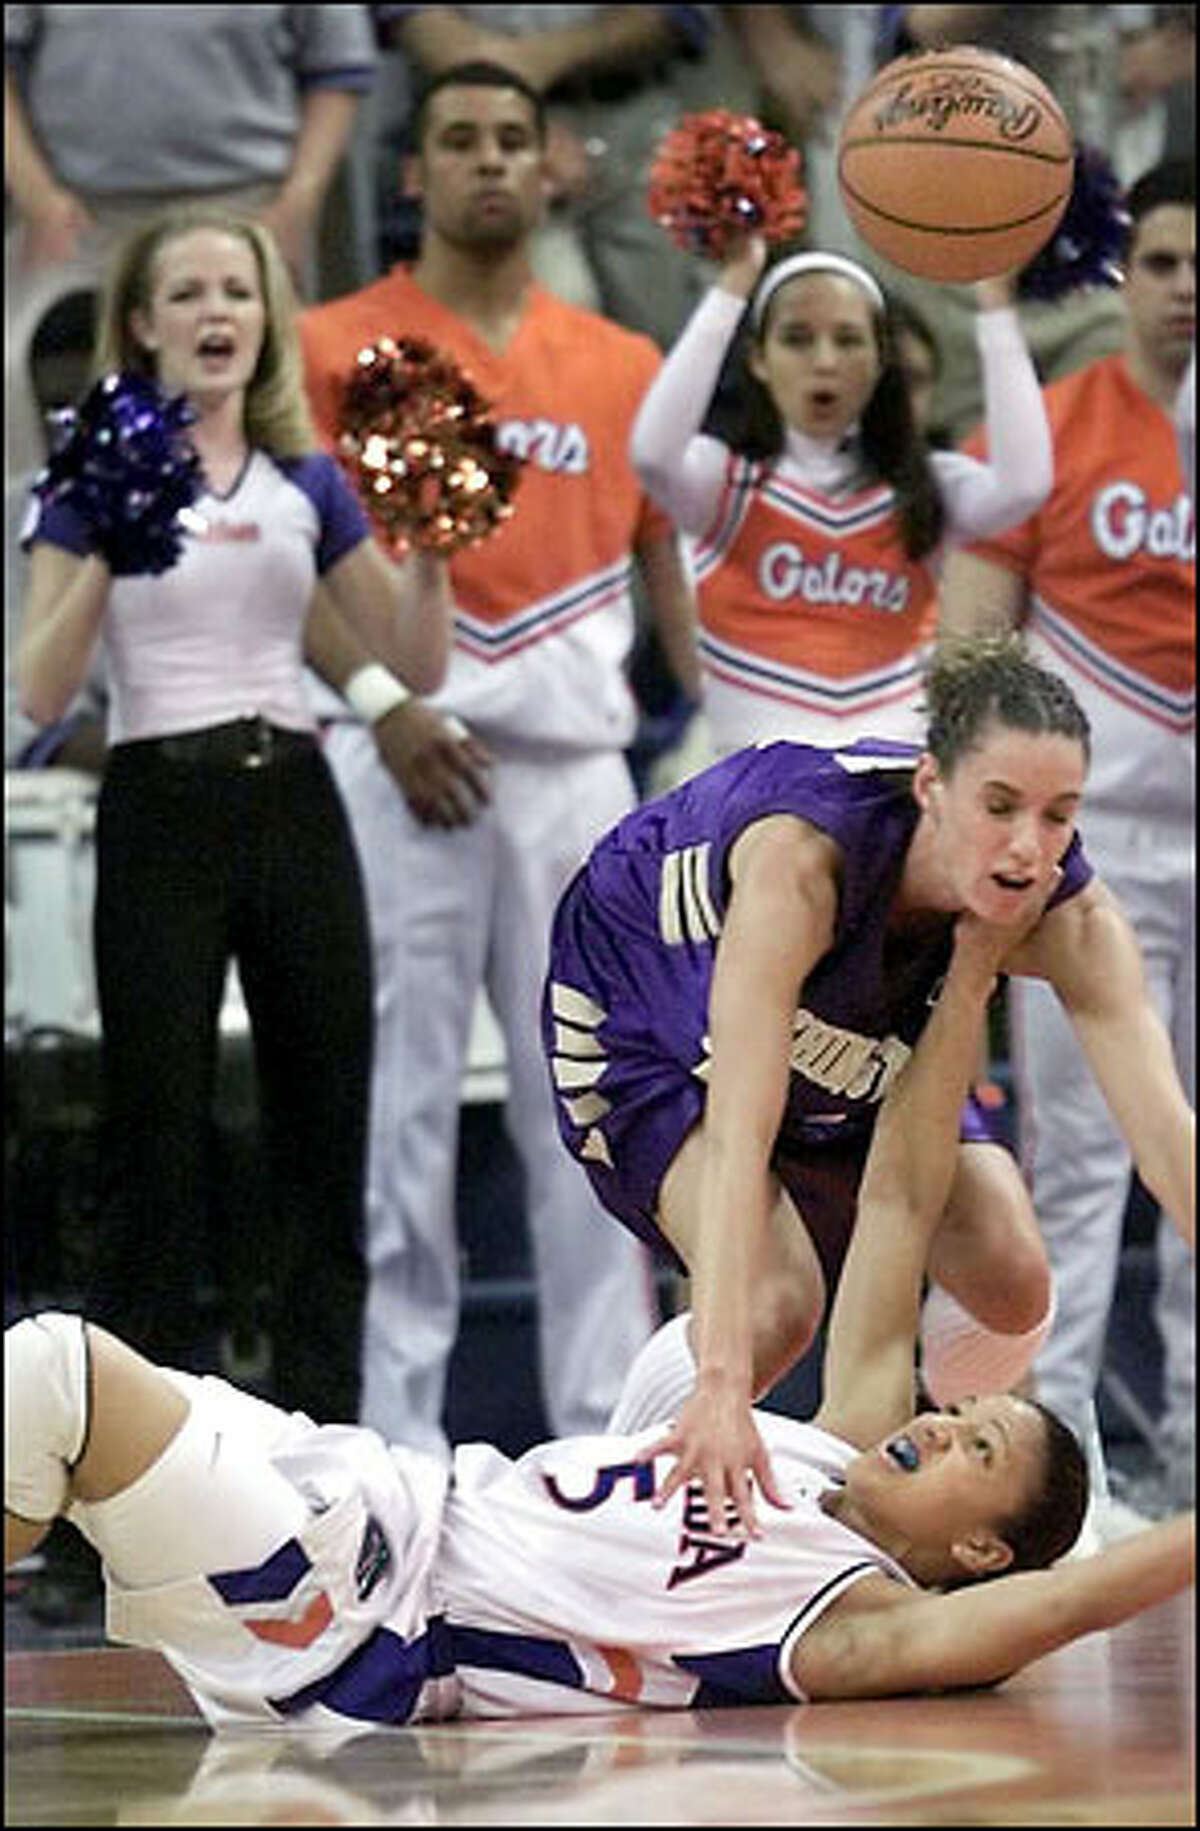 Megan Franza battles with Tombi Bell in the 2nd half for rebound against Florida.